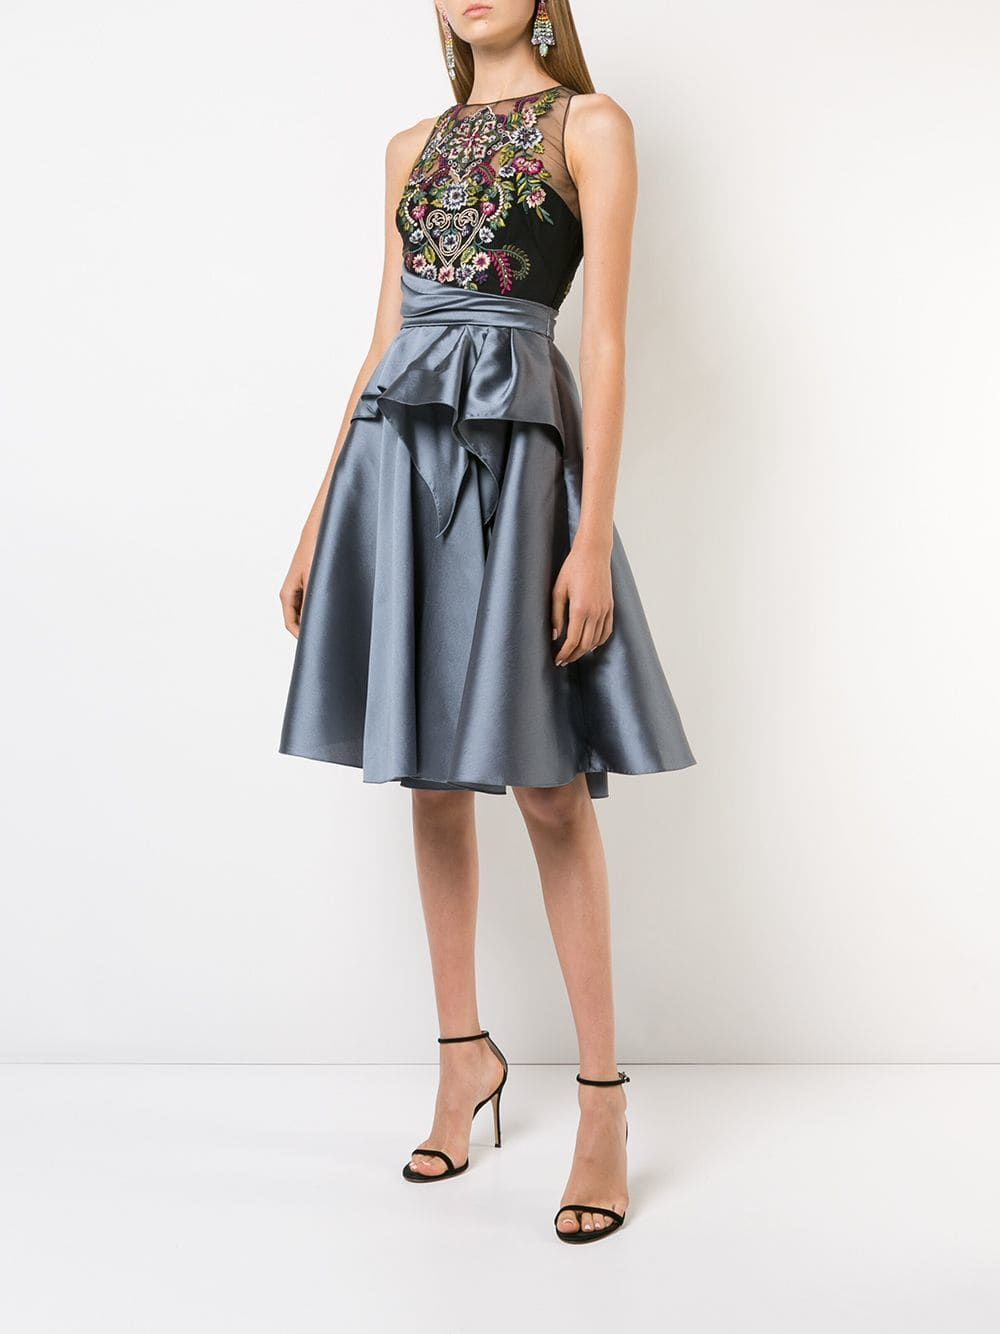 a024b396bd Marchesa Notte Embroidered Top Flared Dress | Marchesa | Flare dress ...